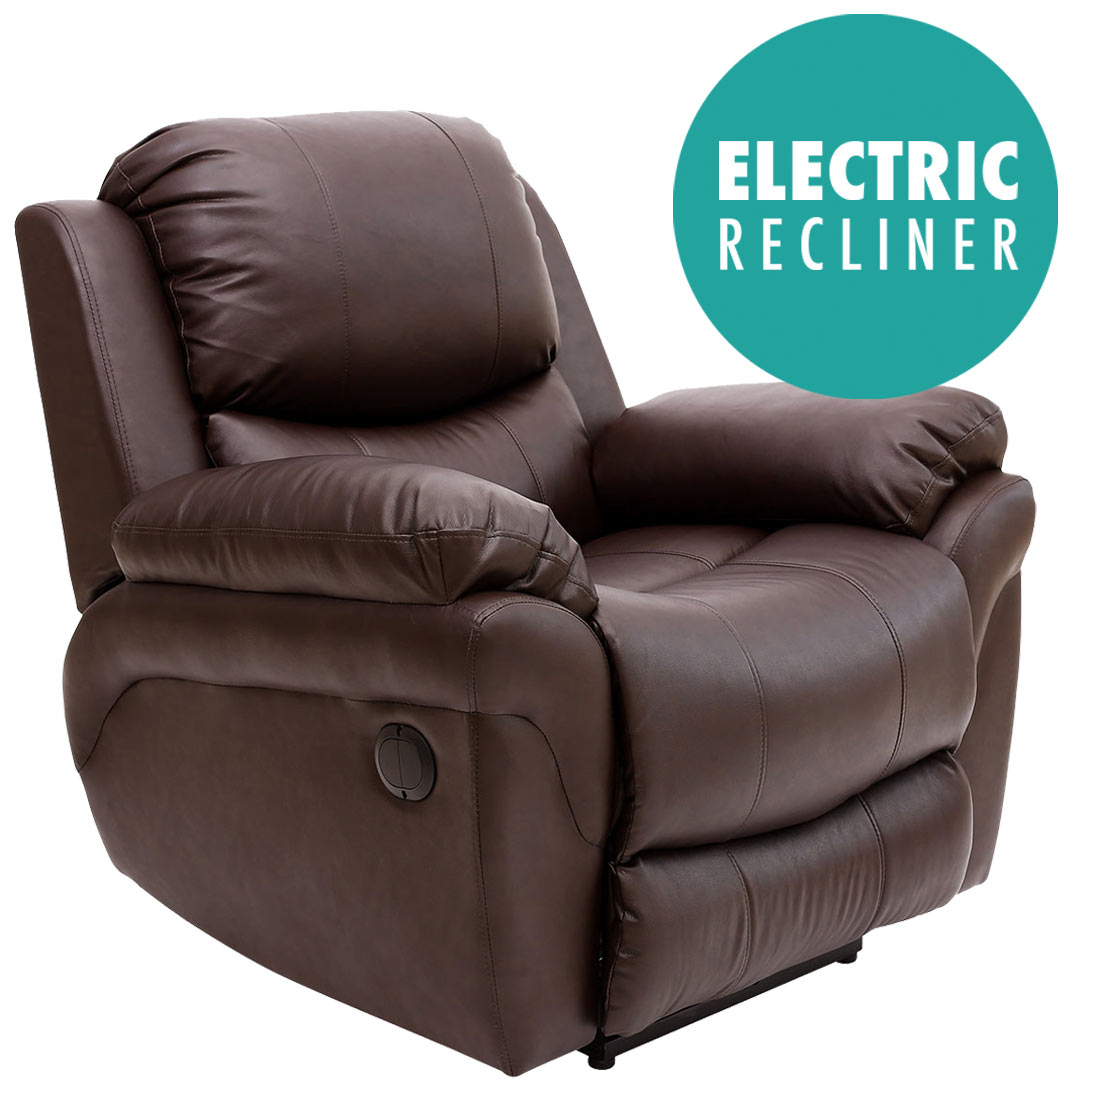 electric brown real leather auto recliner armchair sofa lounge chair